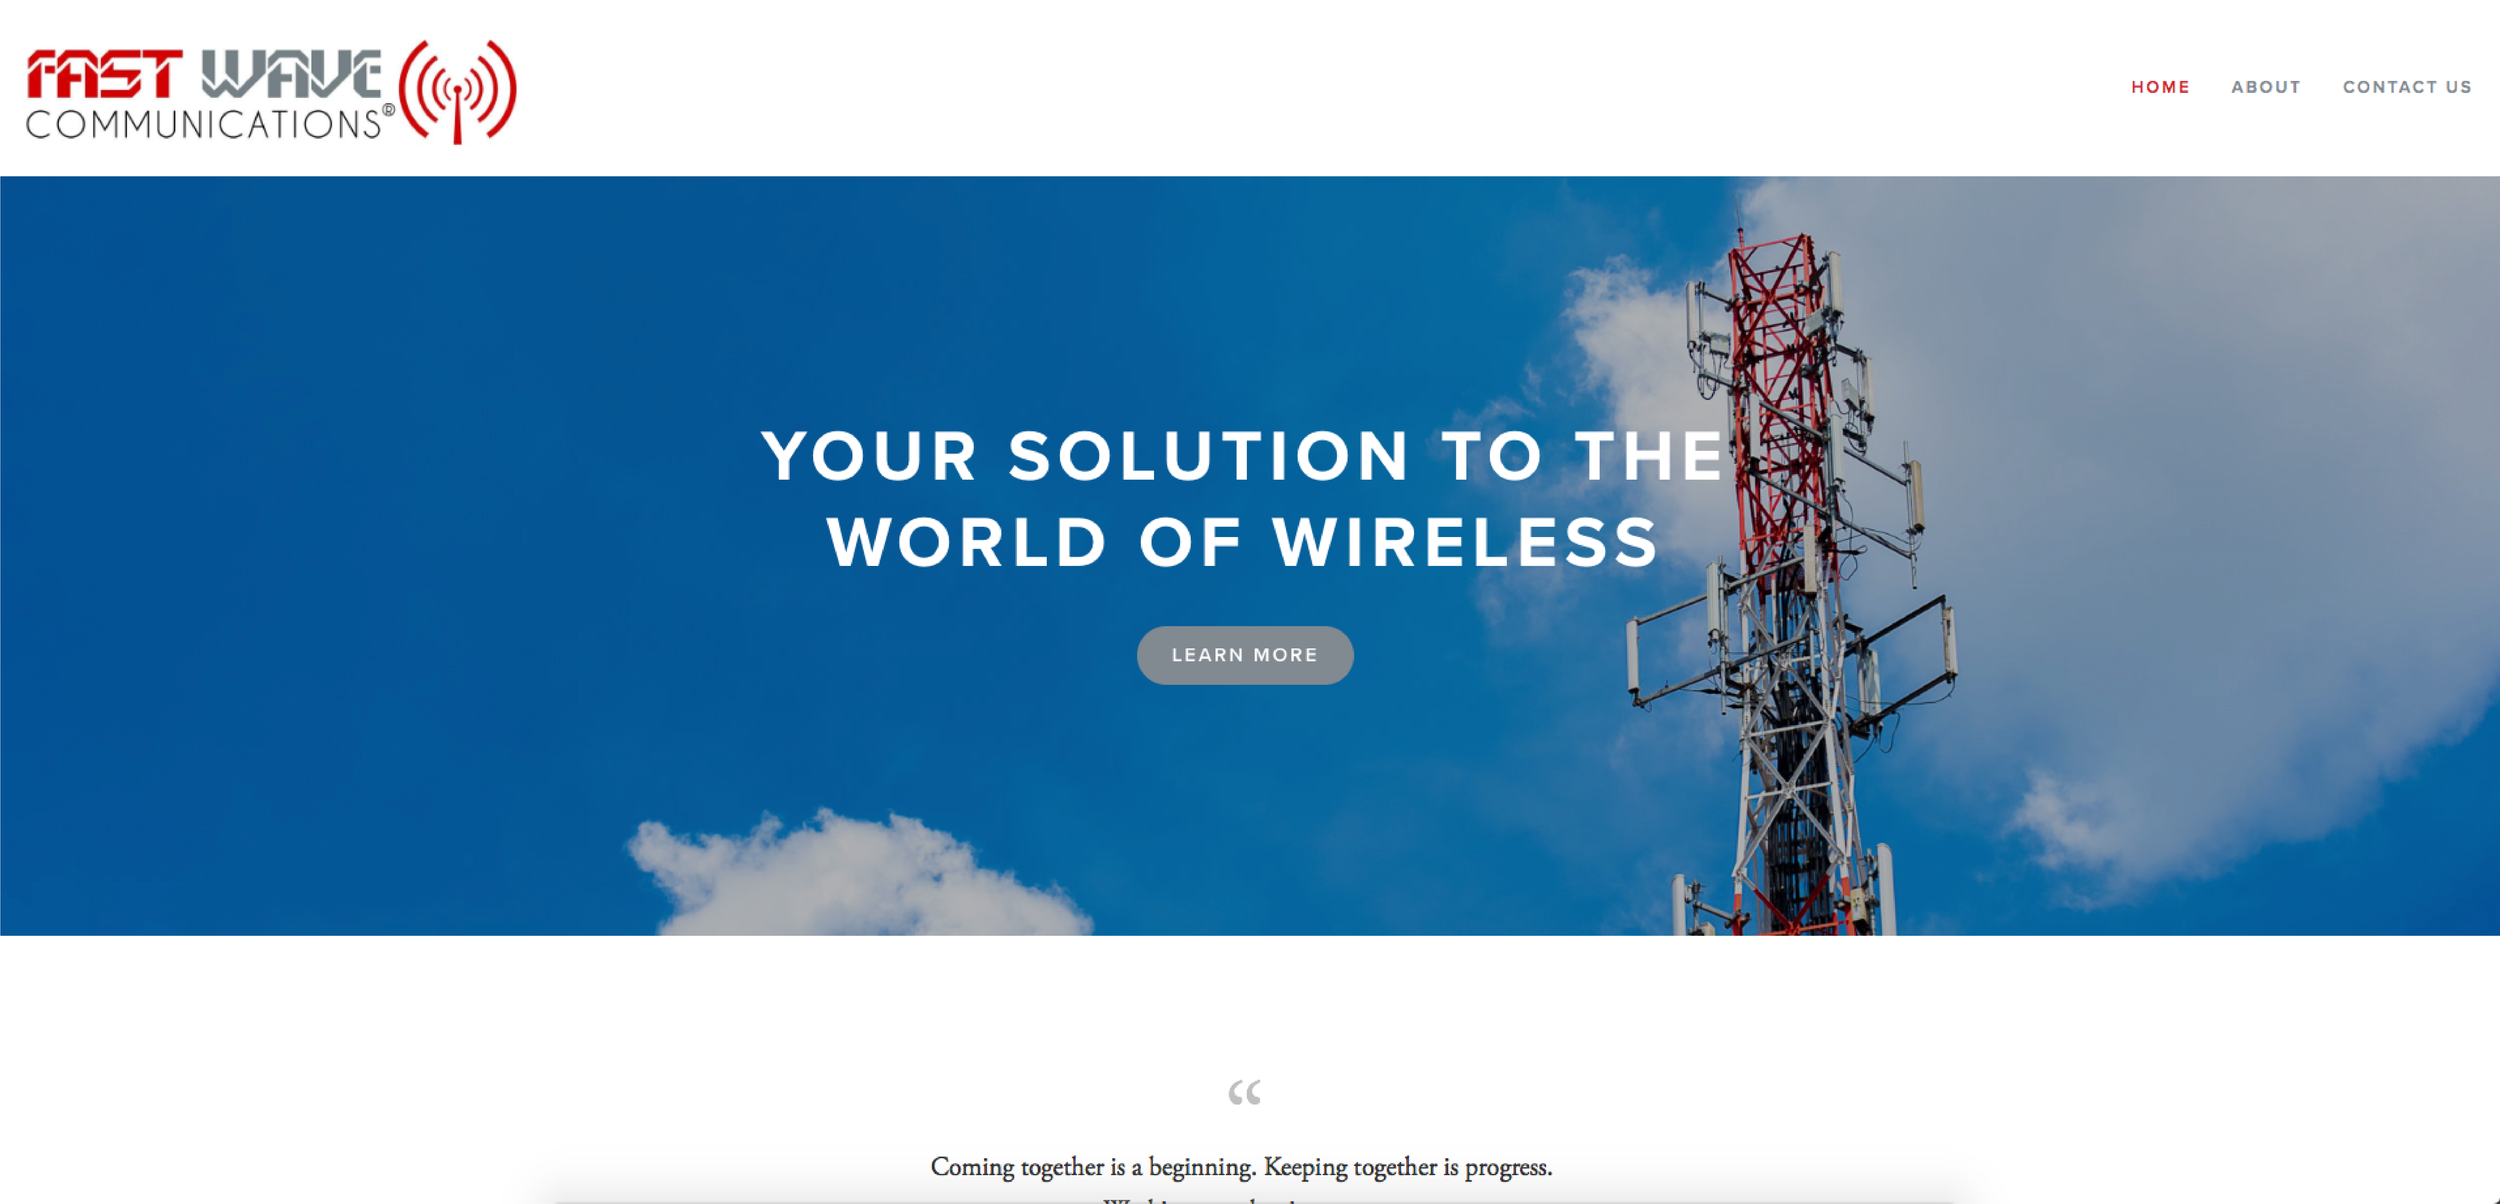 FAST WAVE COMMUNICATIONS - WEBSITE DESIGN BY BLISS CREATIVE ATLANTA, 2017